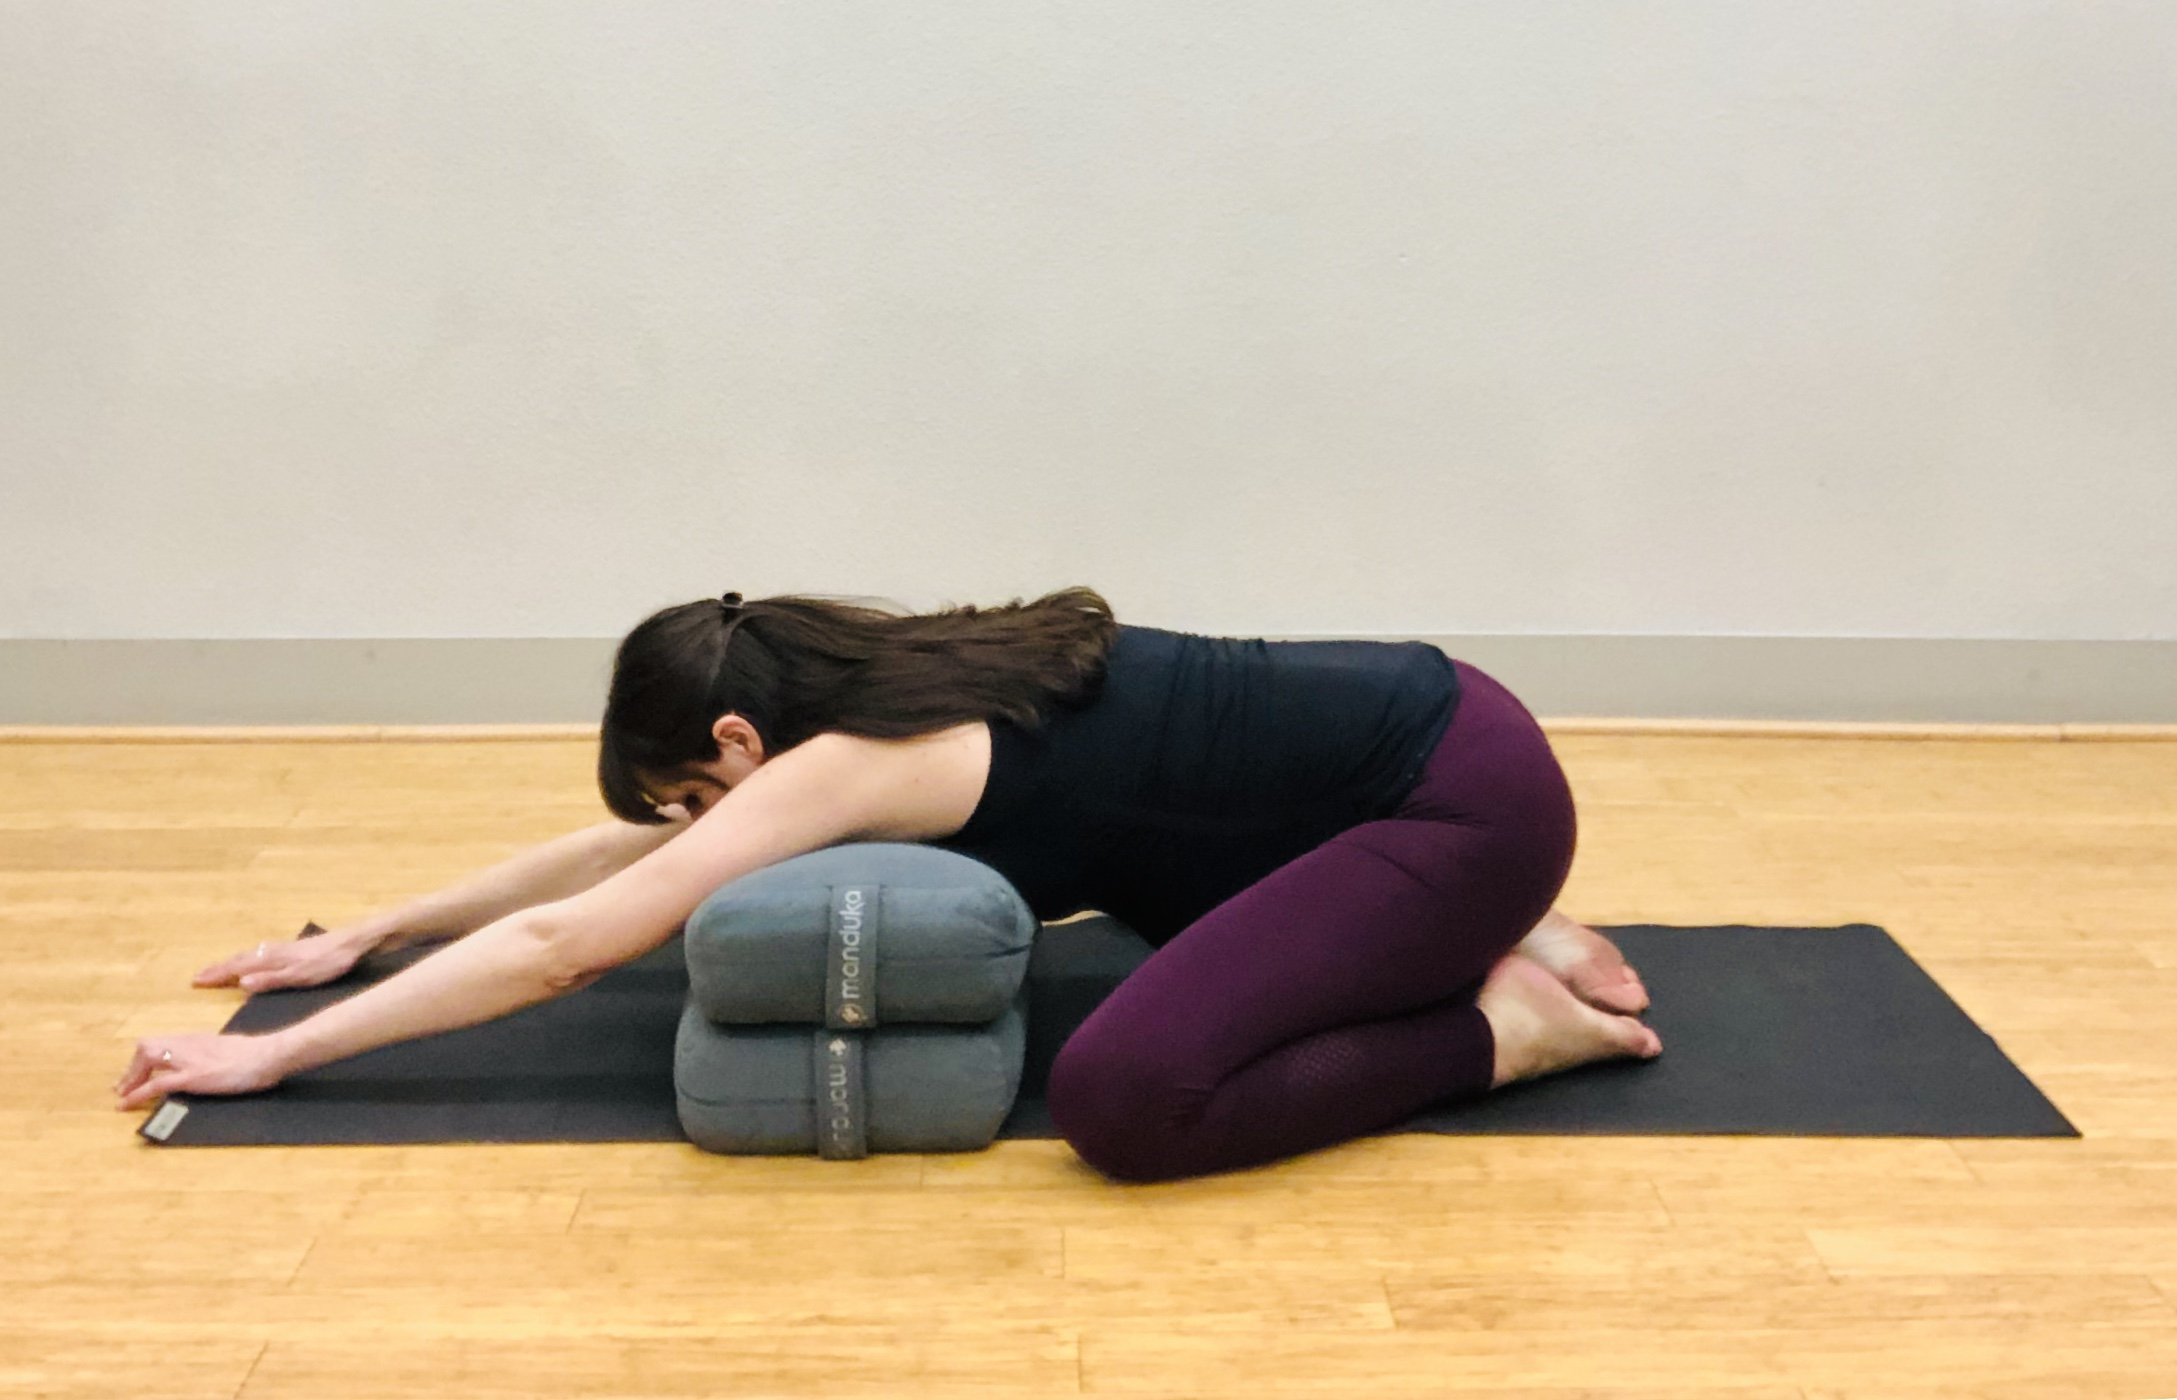 Option #1; Child's Pose with Bolsters or Pillows. Rest chest on cushions and extend arms out. Knees are wide.